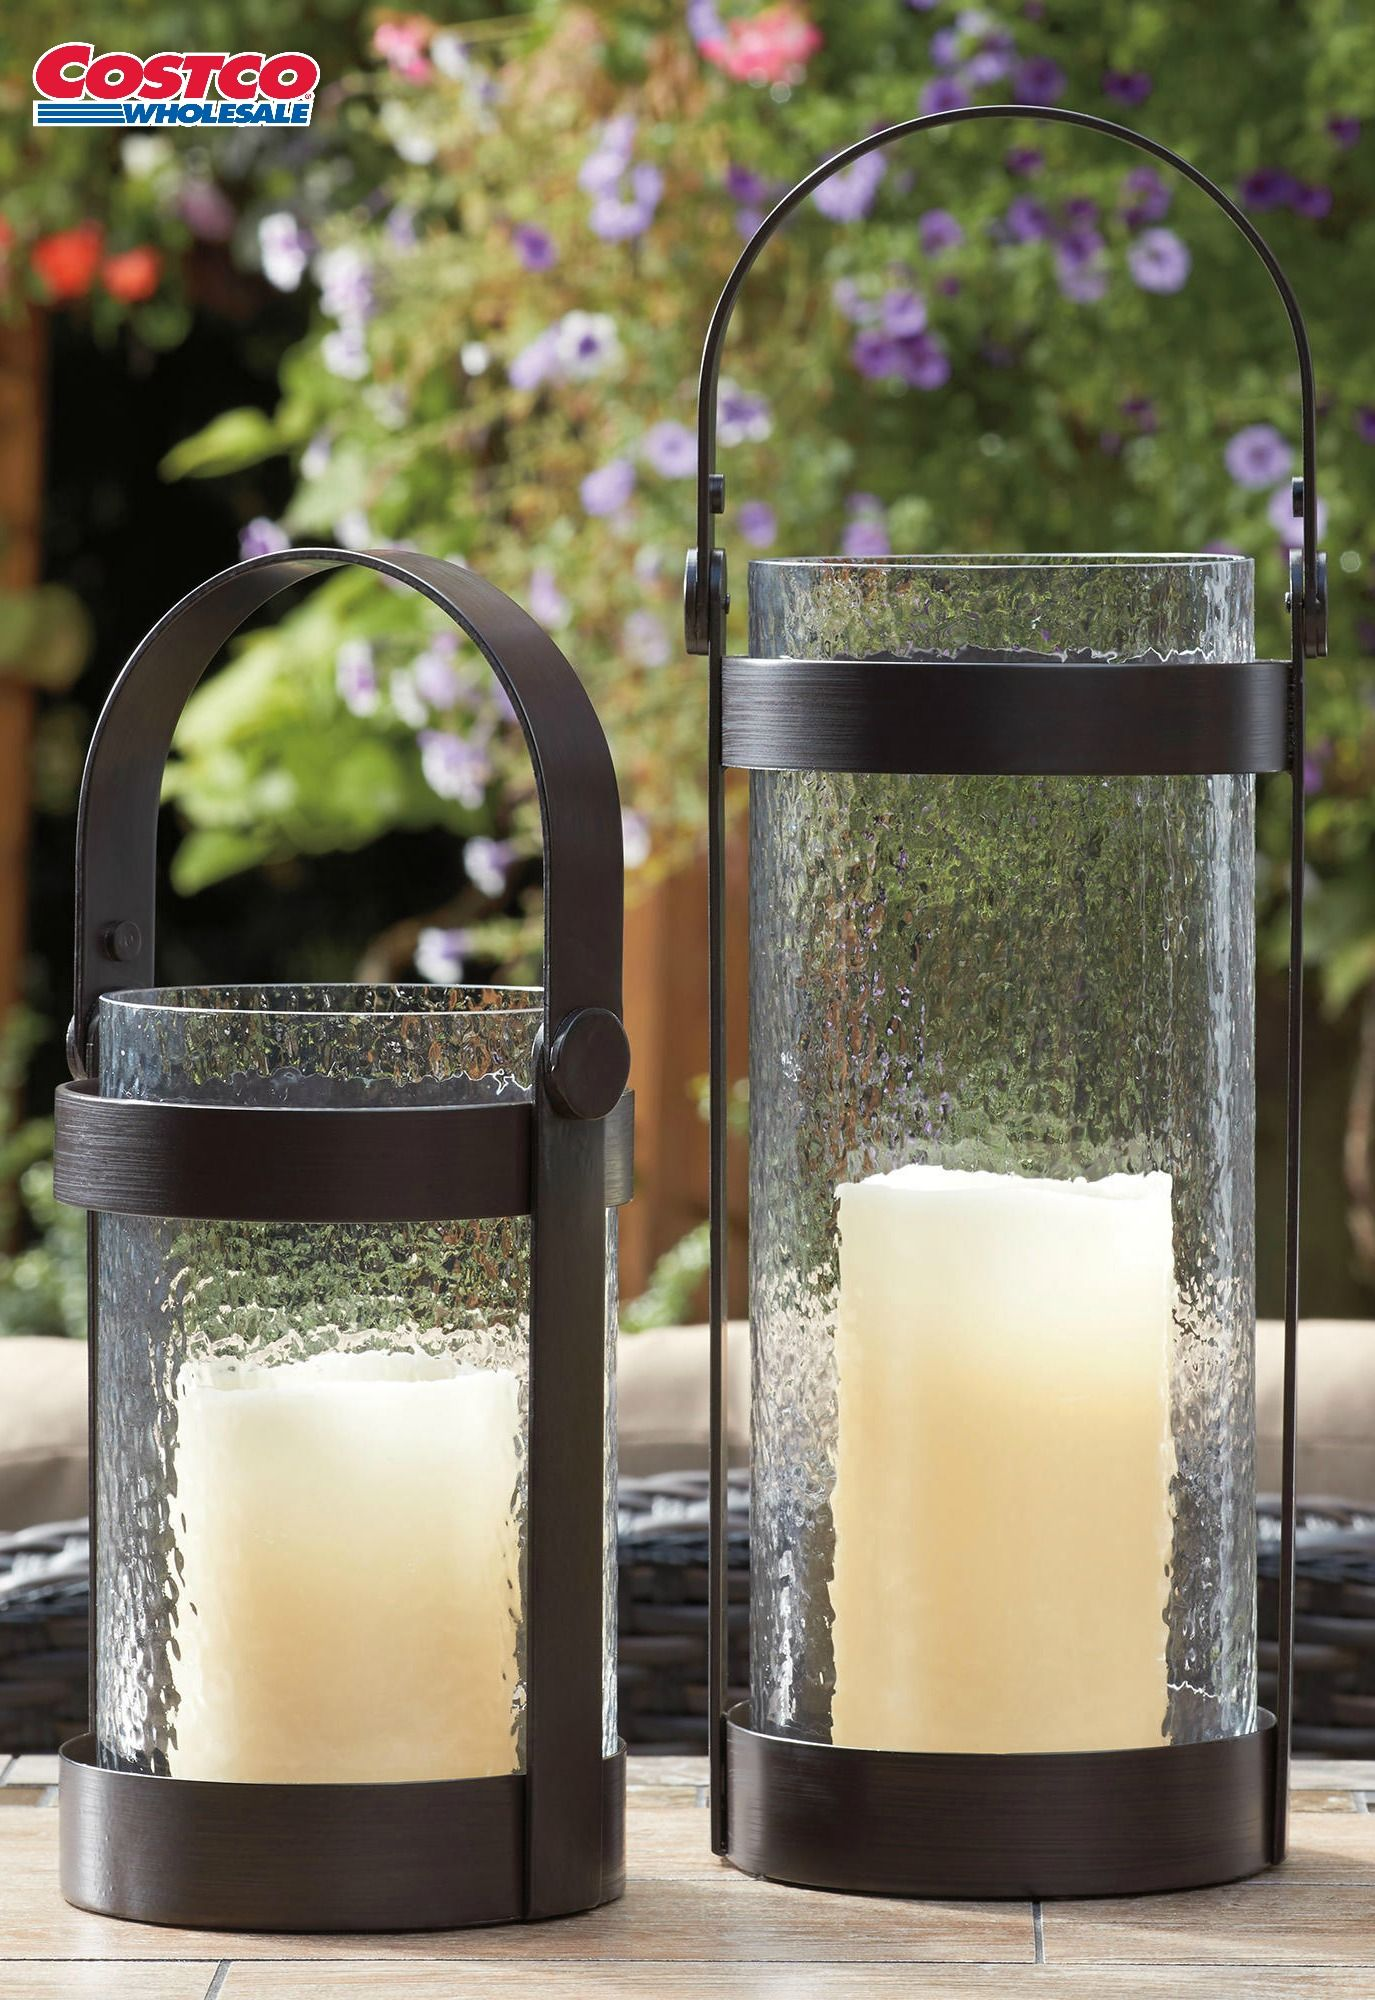 Hurricane Lanterns W Led Outdoor Candles 2 Pack Add This Set Of 2 Iron Framed Glass Hurricane Lanterns To Your C Outdoor Candles Hurricane Lanterns Candles